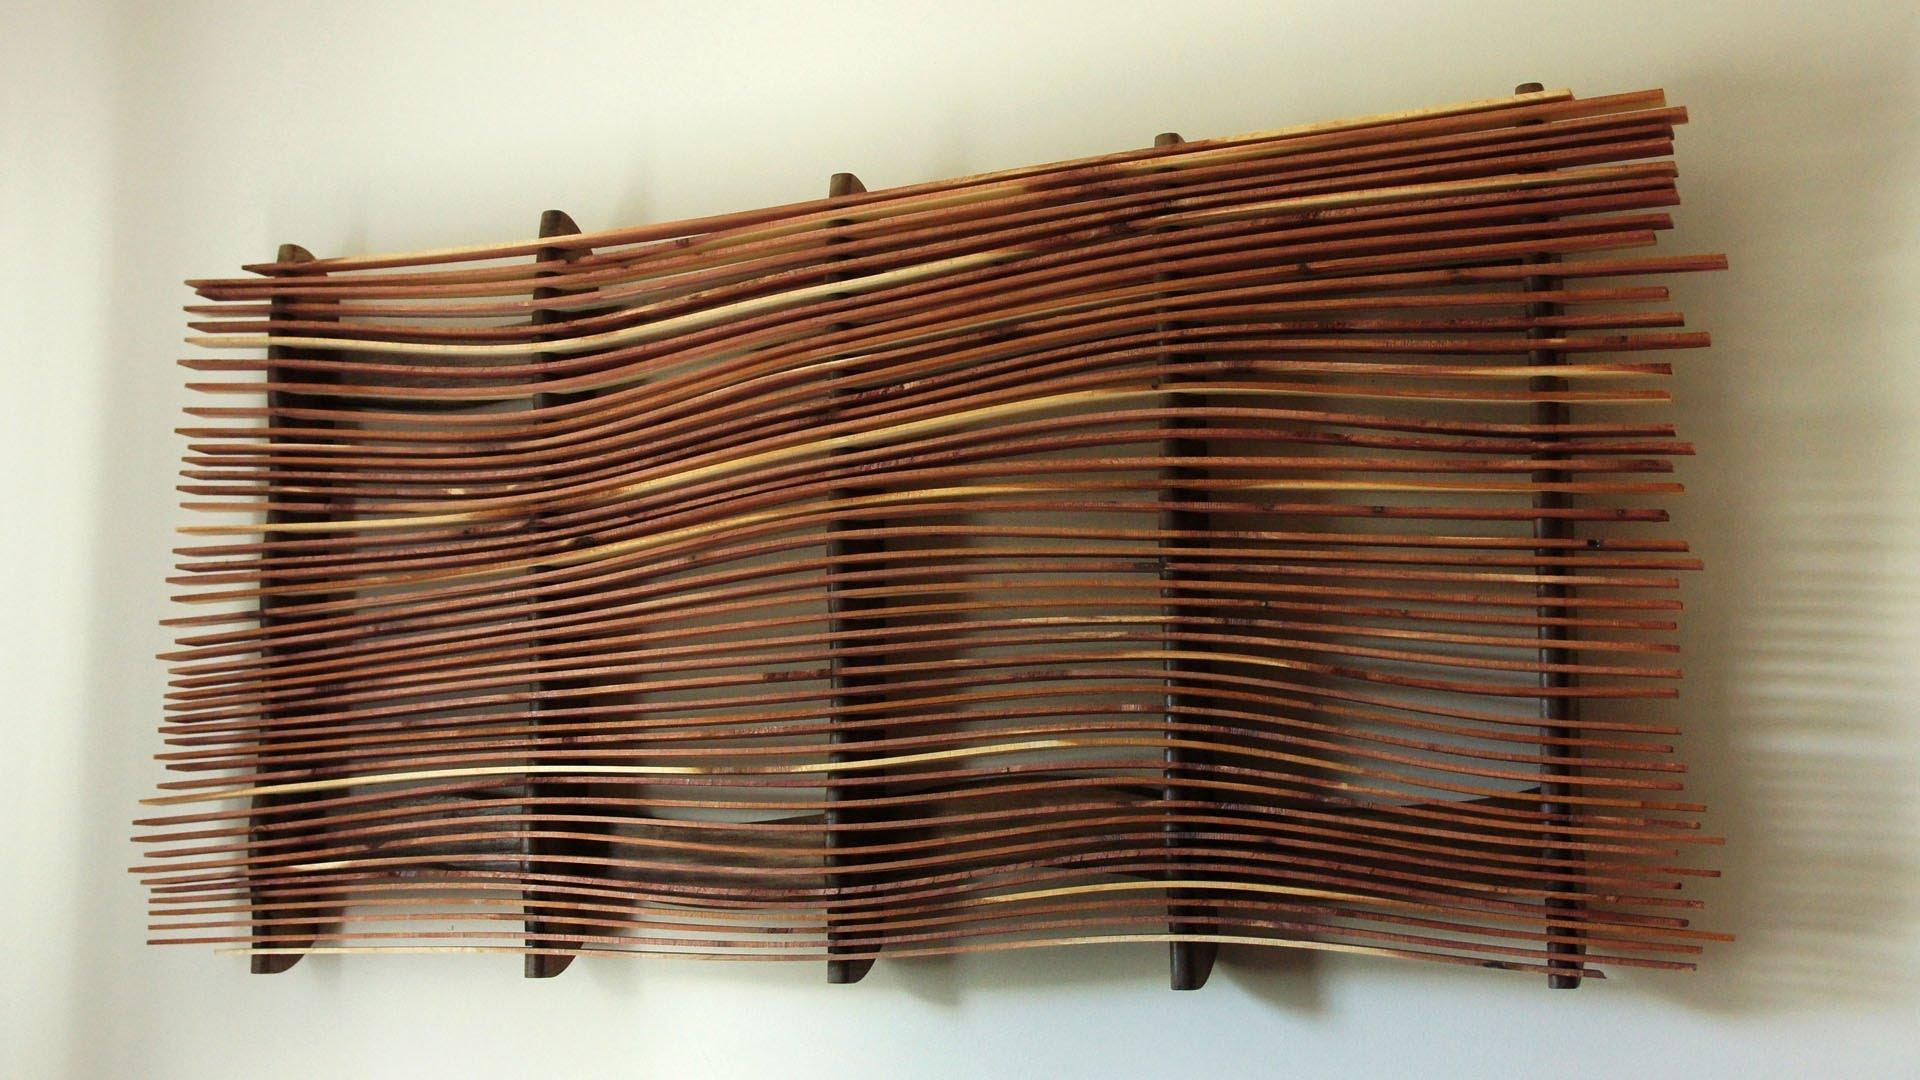 Wall Art Ideas Design : Creative Recycled Wall Art On Wood Intended For Recycled Wall Art (Image 20 of 20)